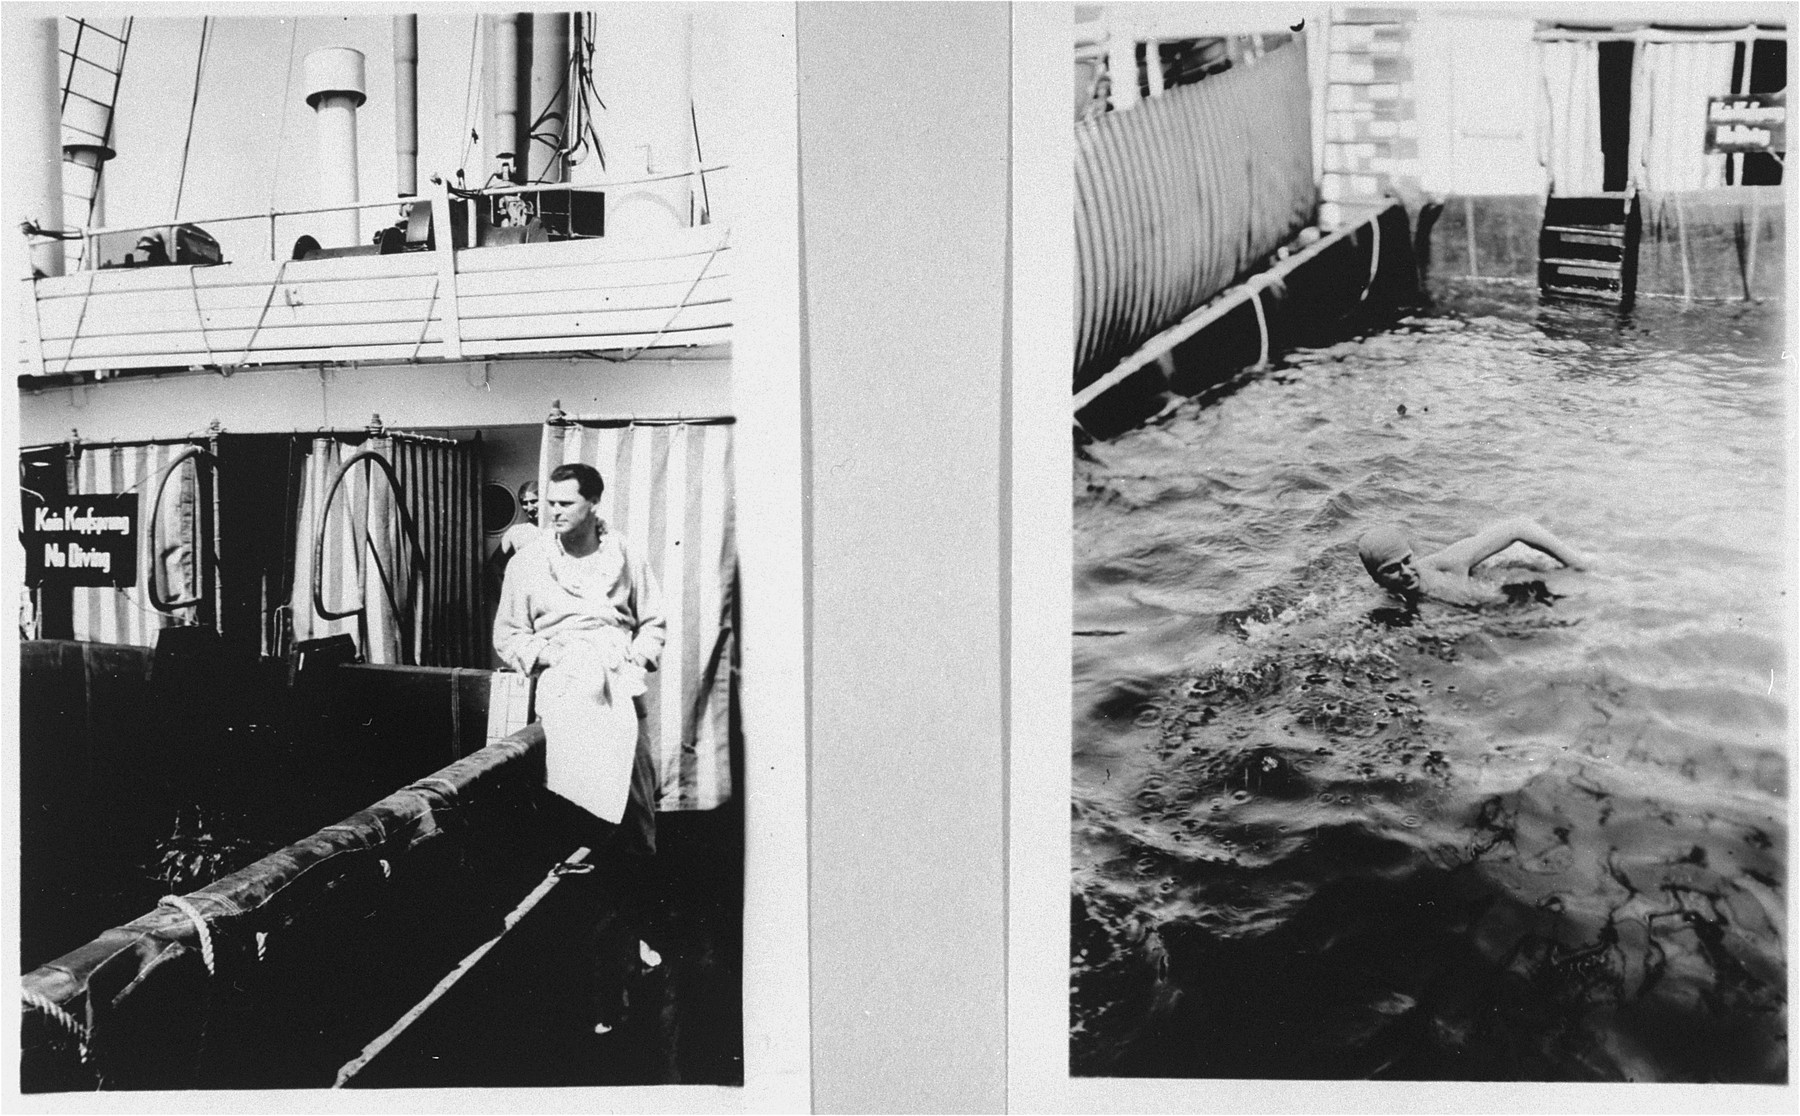 Passengers on the refugee ship MS St. Louis.     From a photo album belonging to St. Louis passenger Moritz Schoenberger.